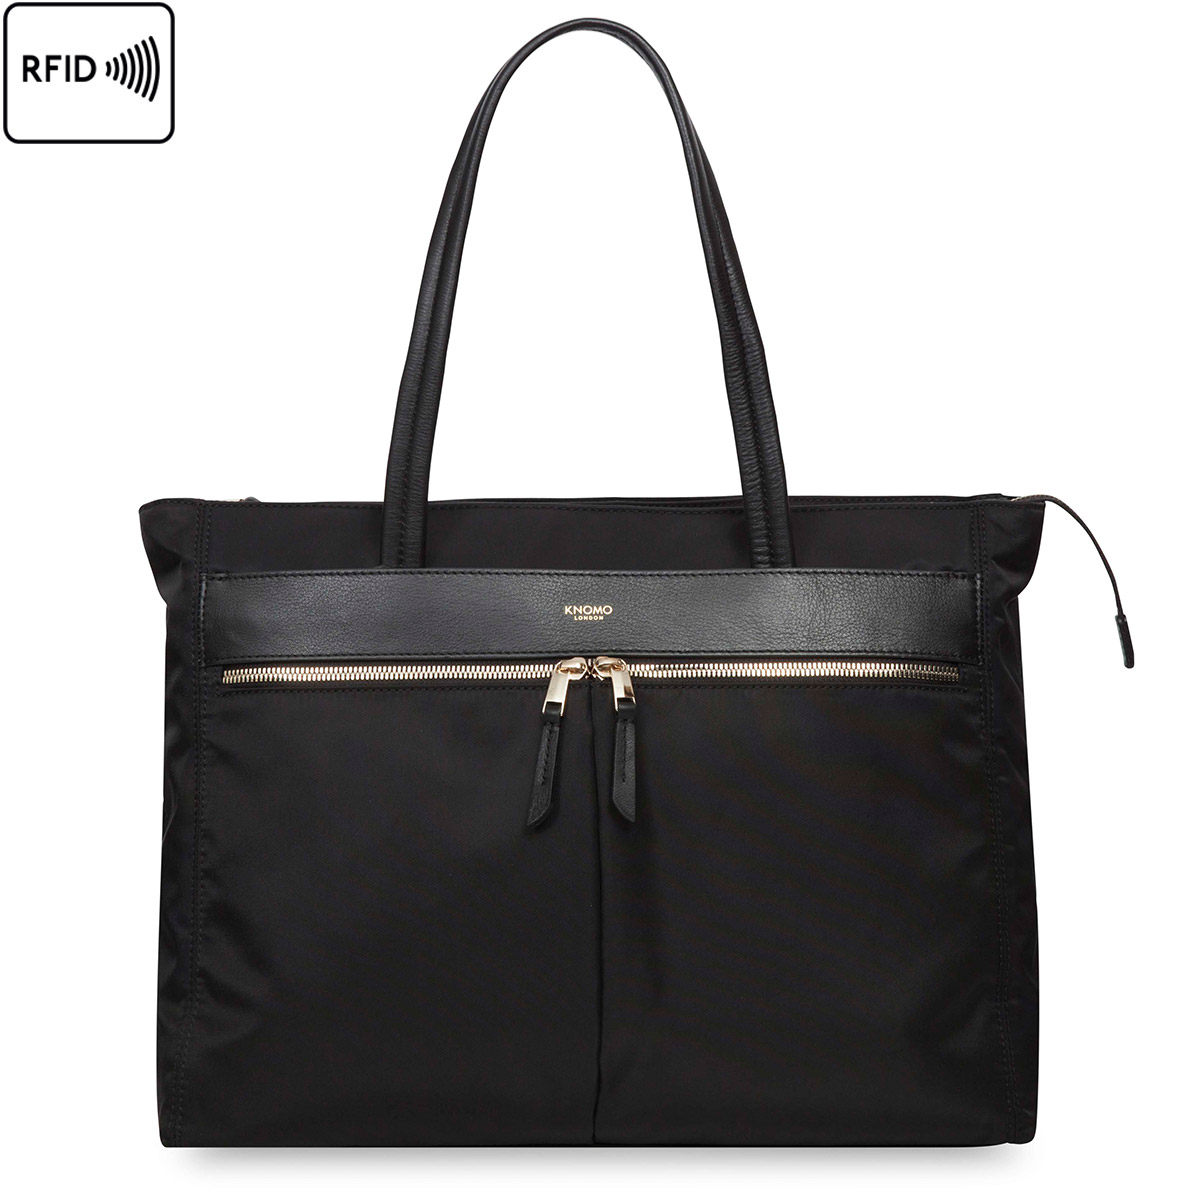 laptop bags for women grosvenor square grosvenor square HEITFEG